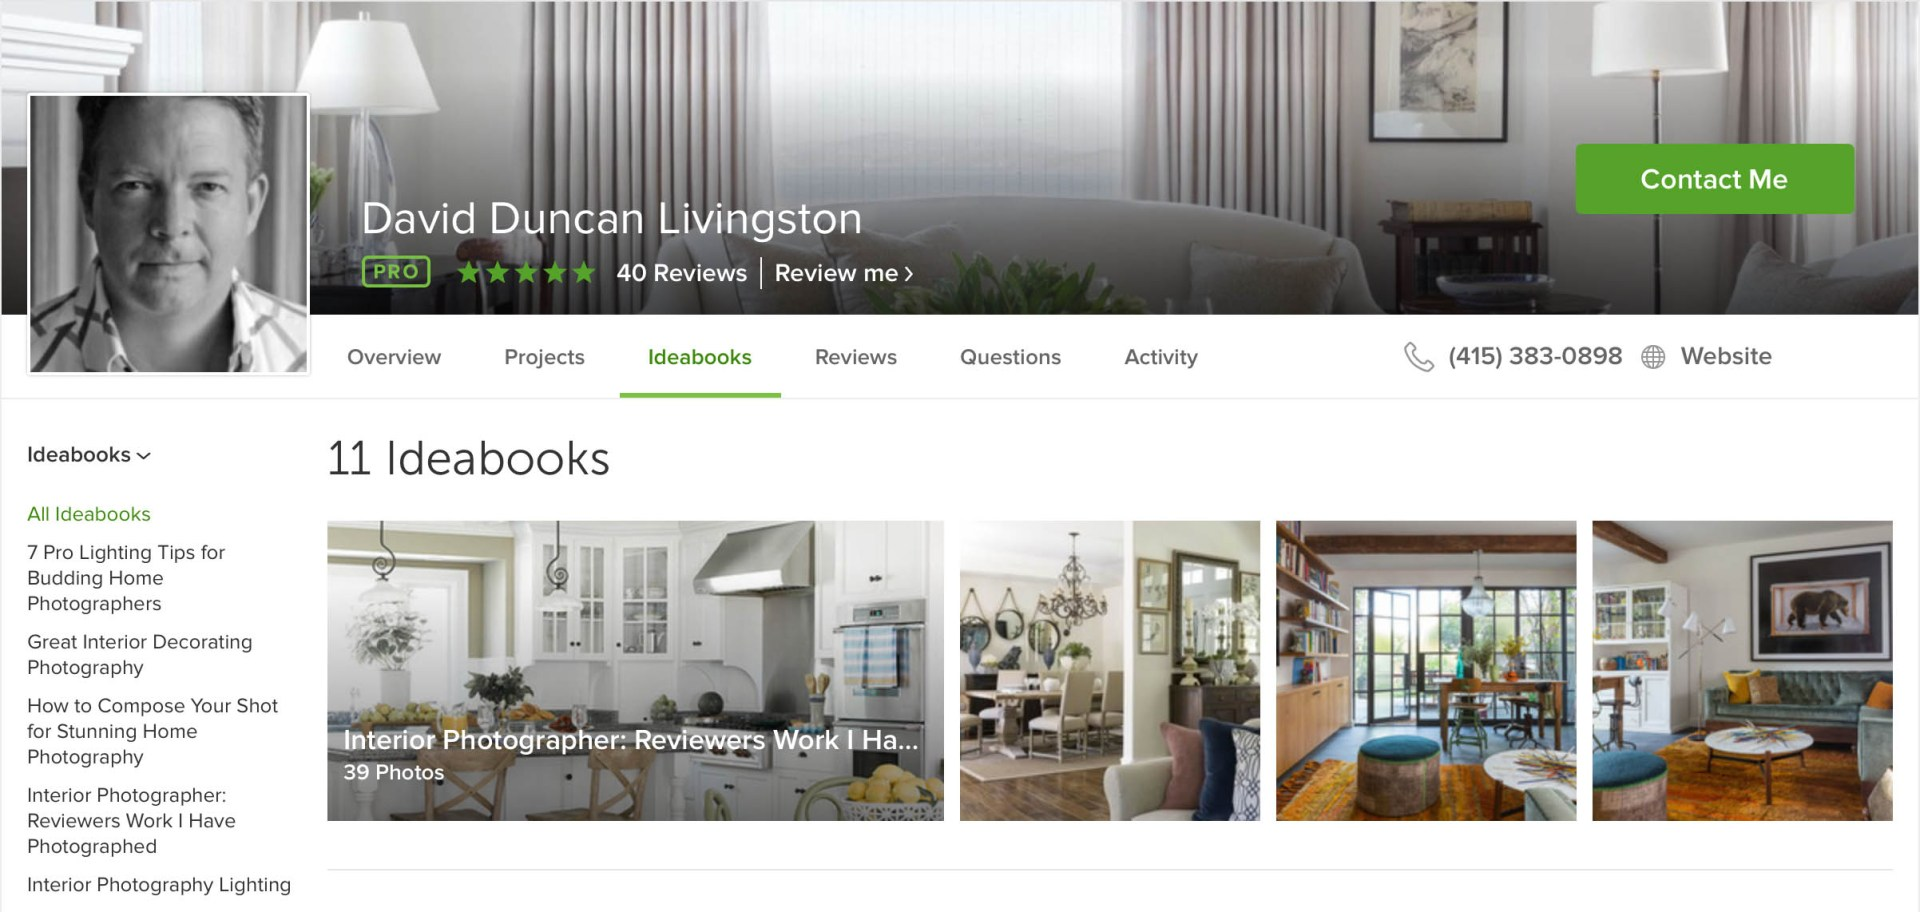 Houzz Marketing for Design Firms - David Duncan Livingston